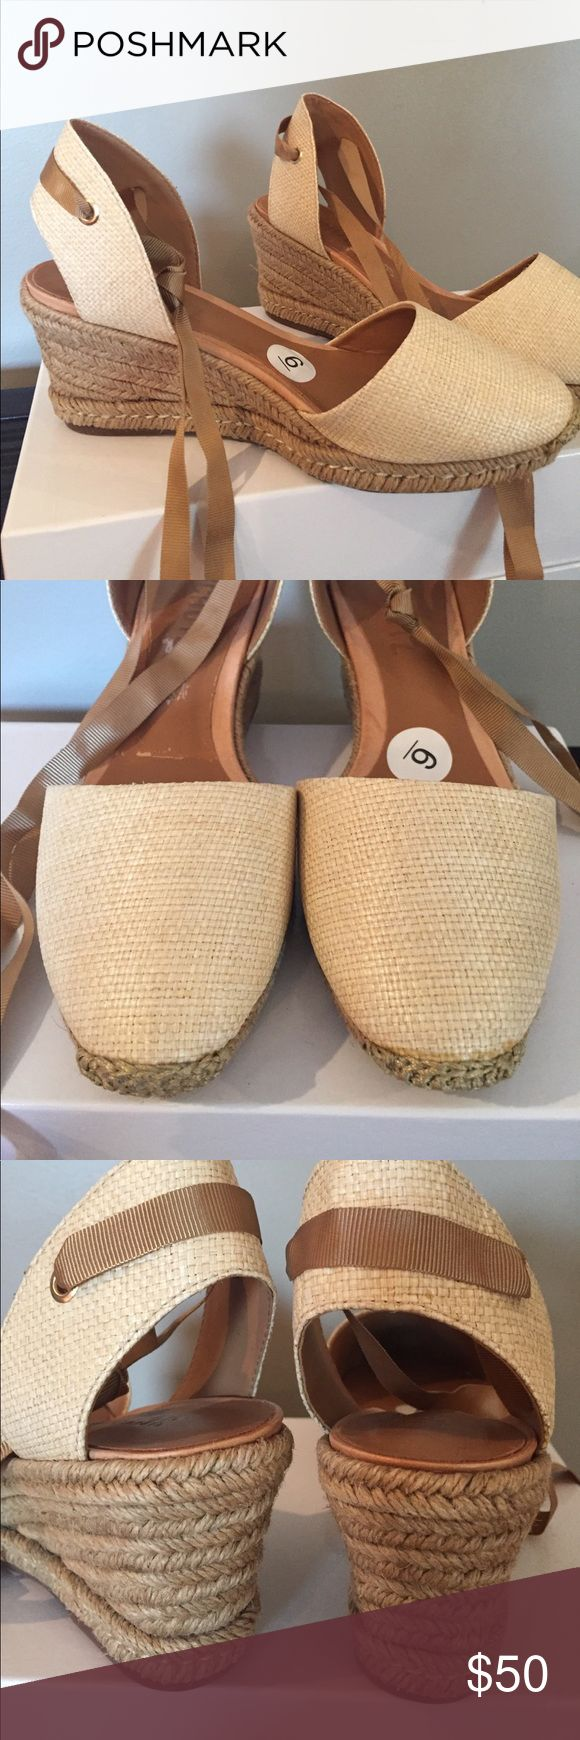 """Schultz Natural Espadrille NWT Size 6 Sandals Schultz Natural Espadrille NWT Size 6 Sandals Ribbon Strap around ankle. No issues. Brand new. Comes in original box. Purchased at Neiman Marcus. 2 1/2"""" comfortable heel!! SCHUTZ Shoes Espadrilles"""